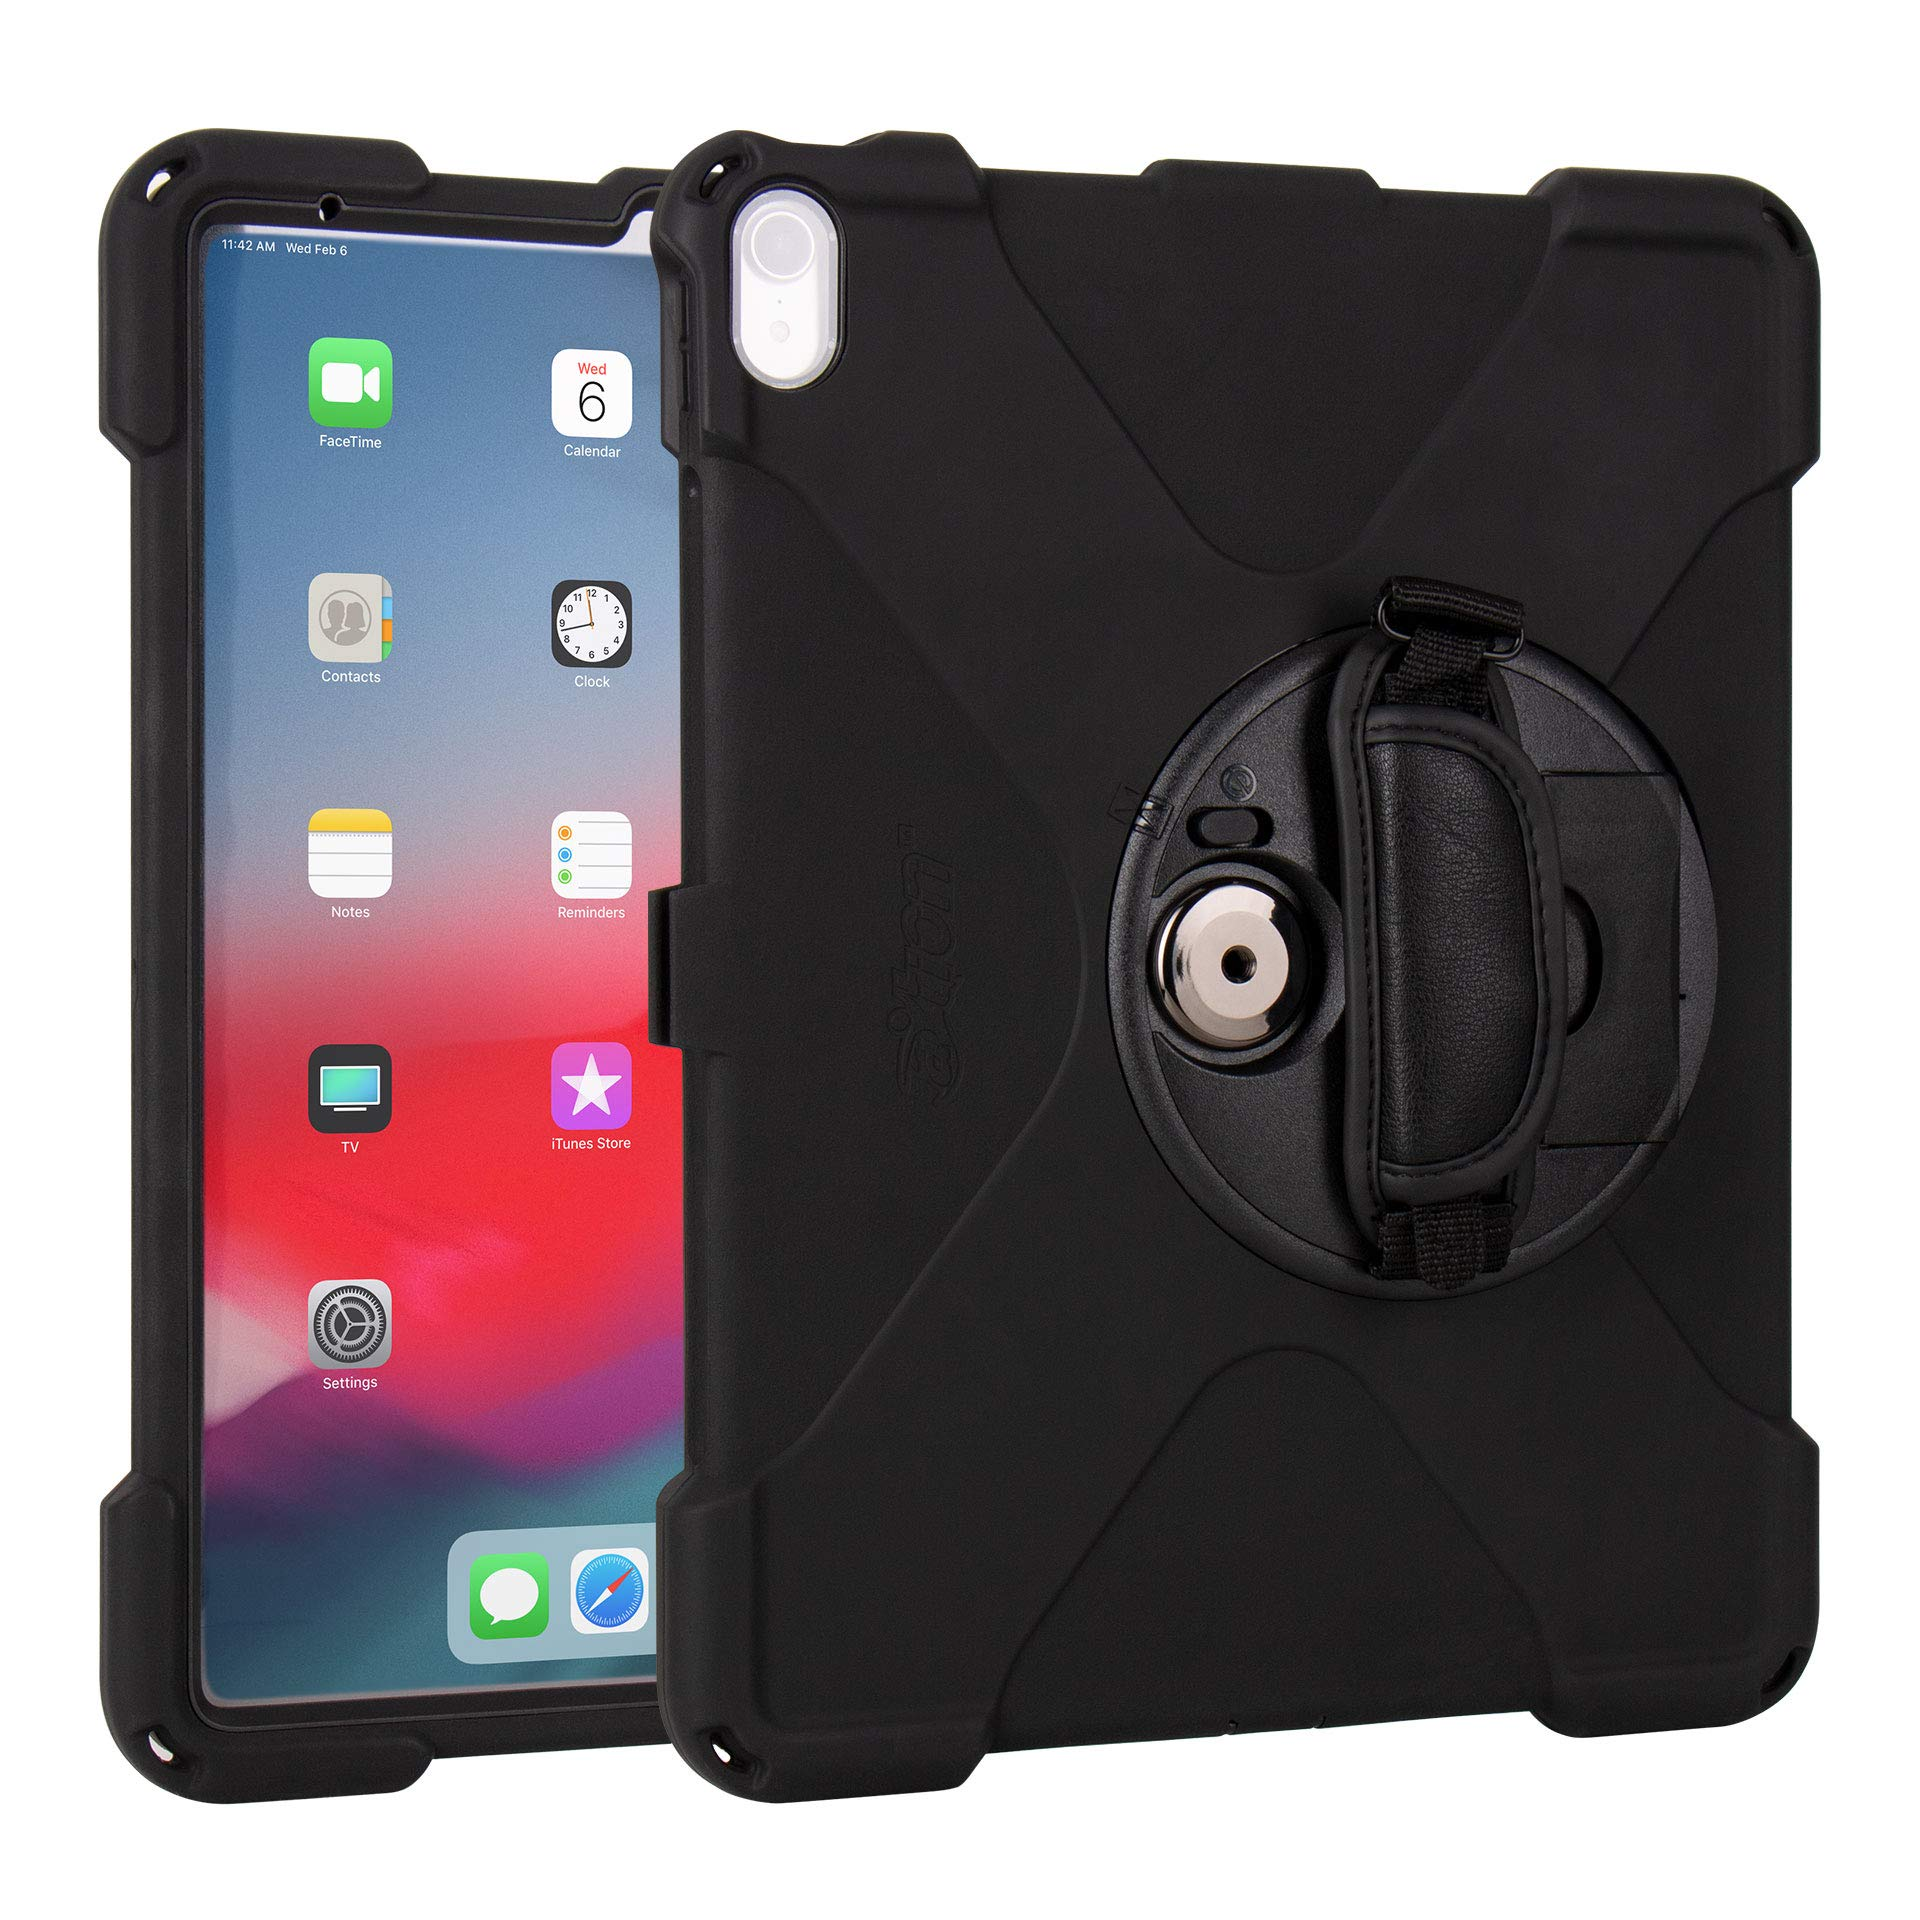 The Joy Factory aXtion Bold MP Water-Resistant Rugged Shockproof Case for iPad Pro 12.9'' [3rd Gen] Built-in Screen Protector, Hand Strap, Kickstand (CWA412)